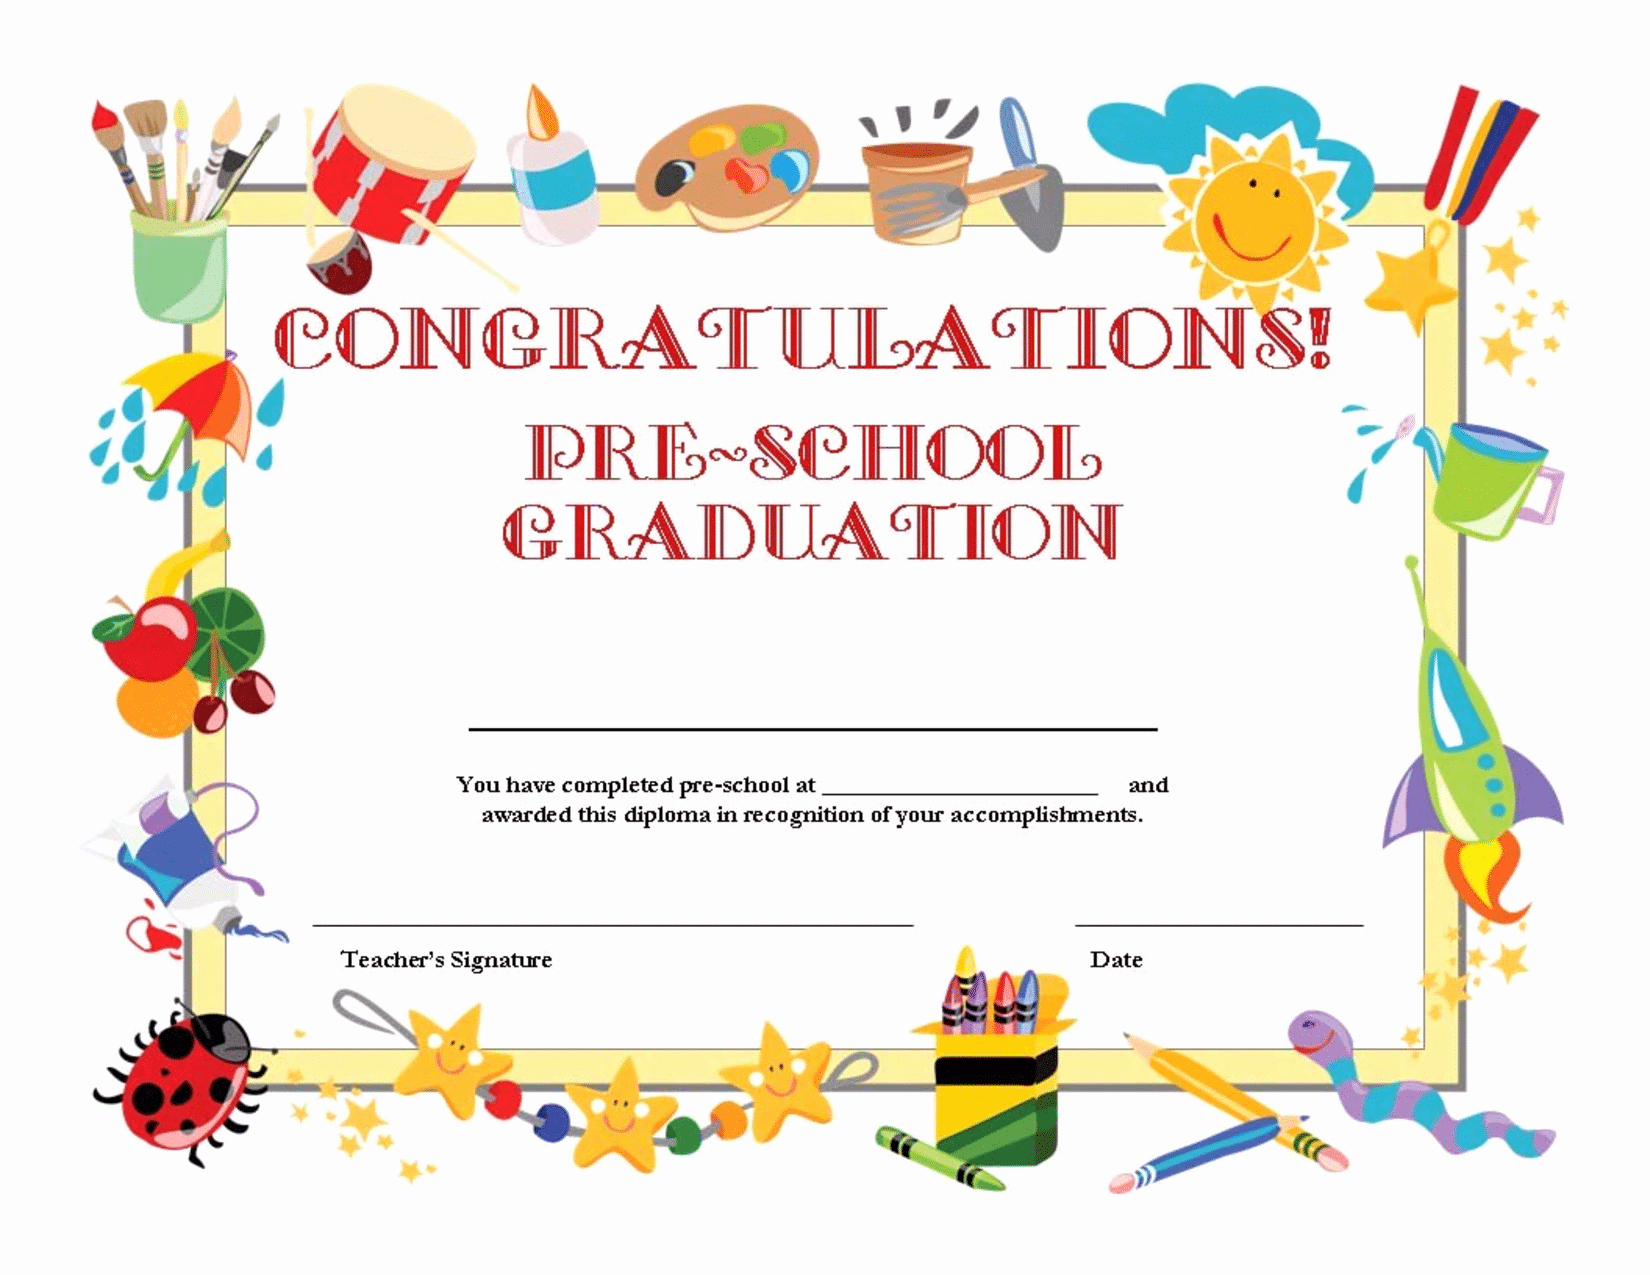 Kindergarten Graduation Invitation Templates Free Elegant Free Preschool Graduation Invitation Template